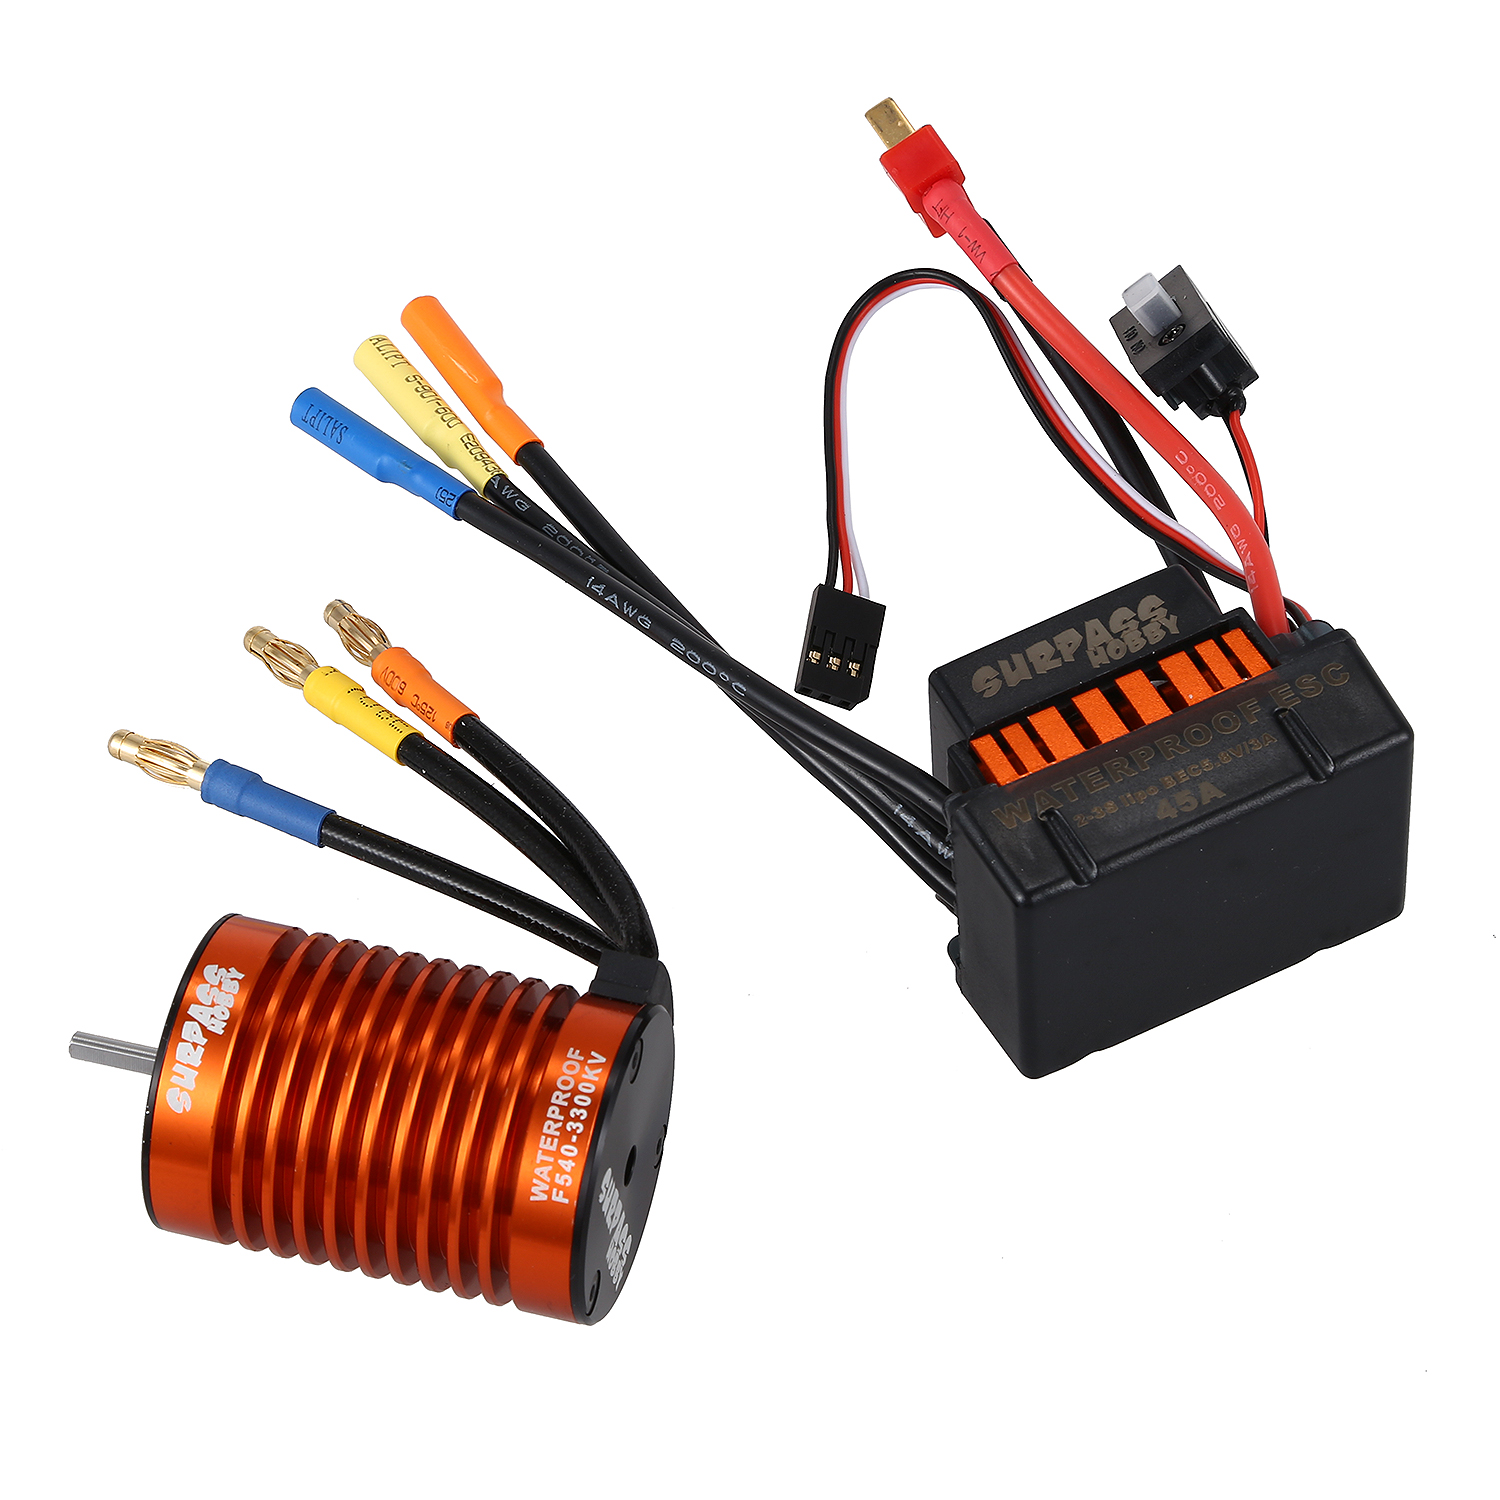 SURPASS HOBBY Waterproof F540 3300KV Brushless Motor with 45A ESC Combo Set for 1/10 RC Car Truck